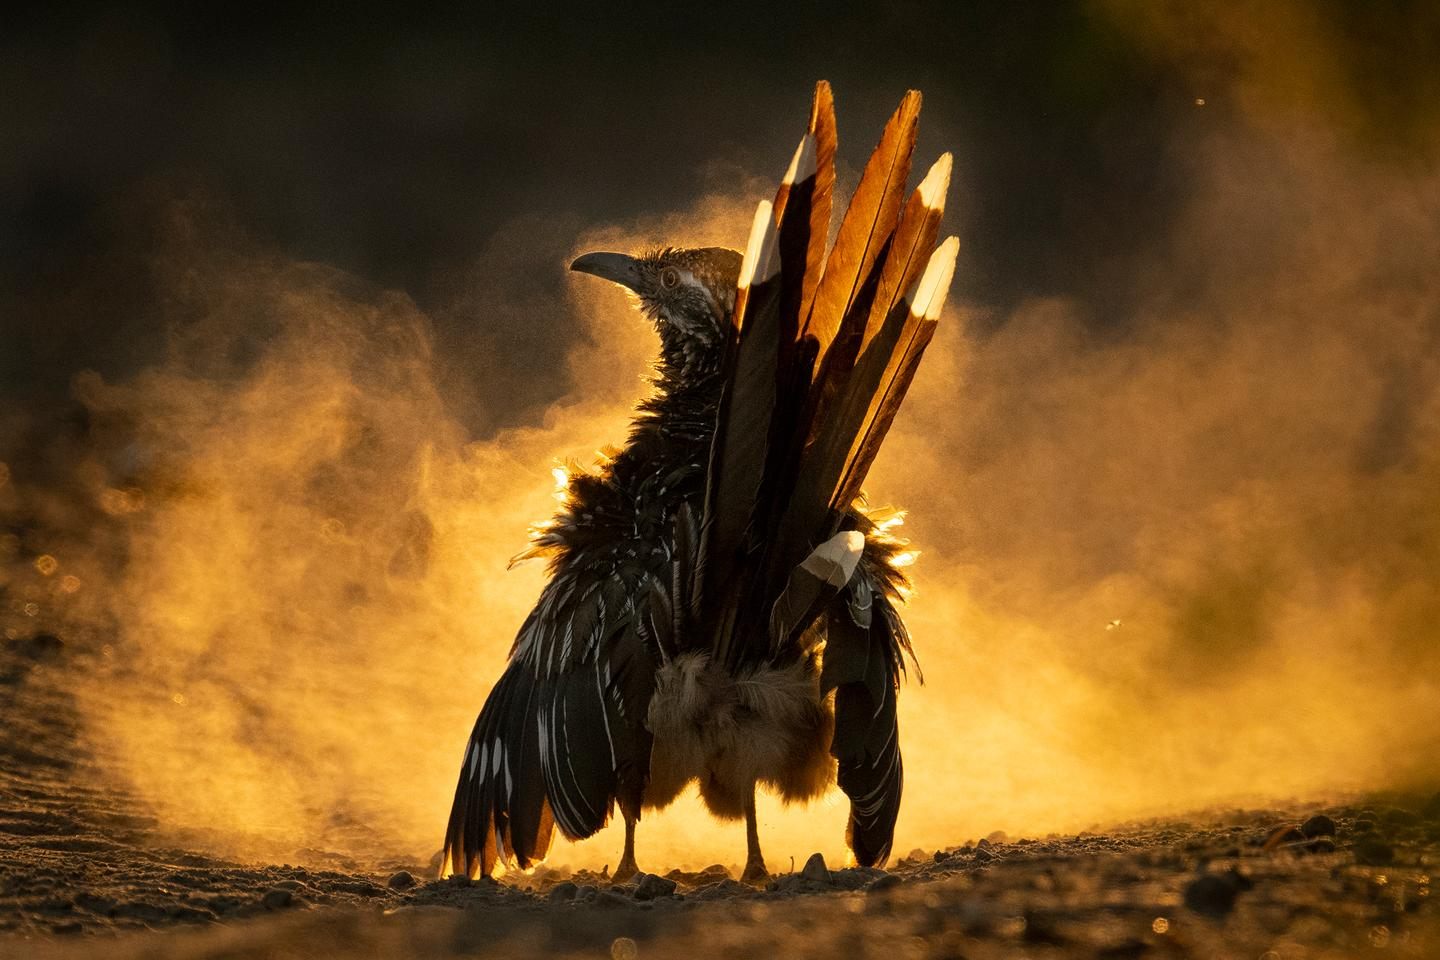 In the midst of an evening dust bath, a Greater Roadrunner stands proudly, backlit by the sun. Nikon D500 with Nikon 500mm f/4.0 lens; 1/3200 second at f/6.3; ISO 2000